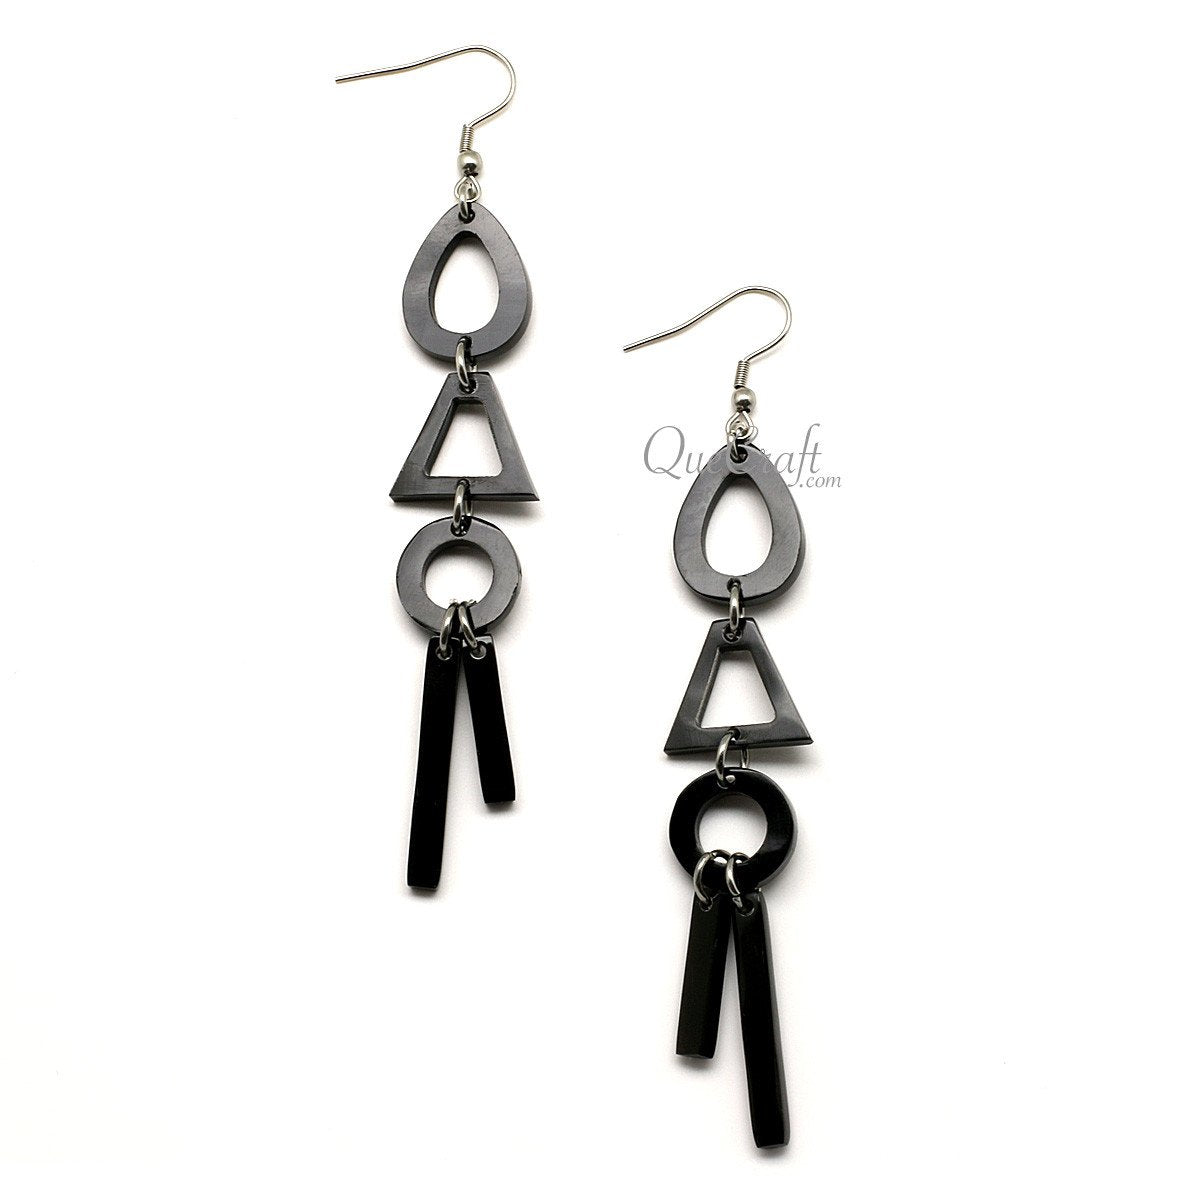 Horn Earrings #12355 - HORN.JEWELRY by QueCraft